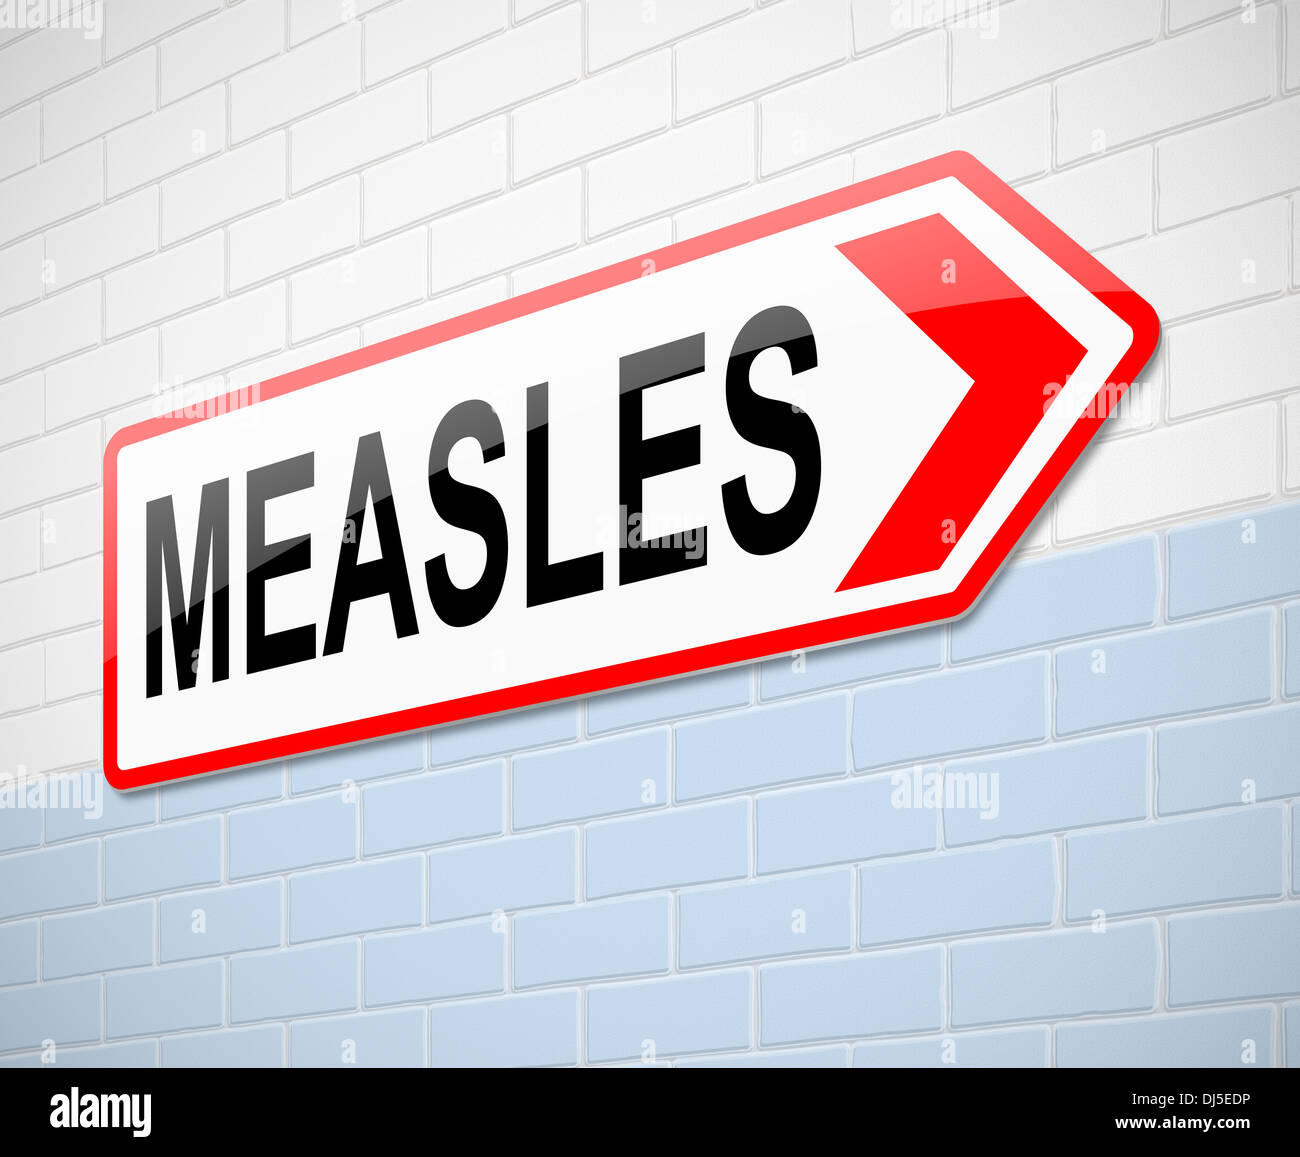 Measles concept. - Stock Image